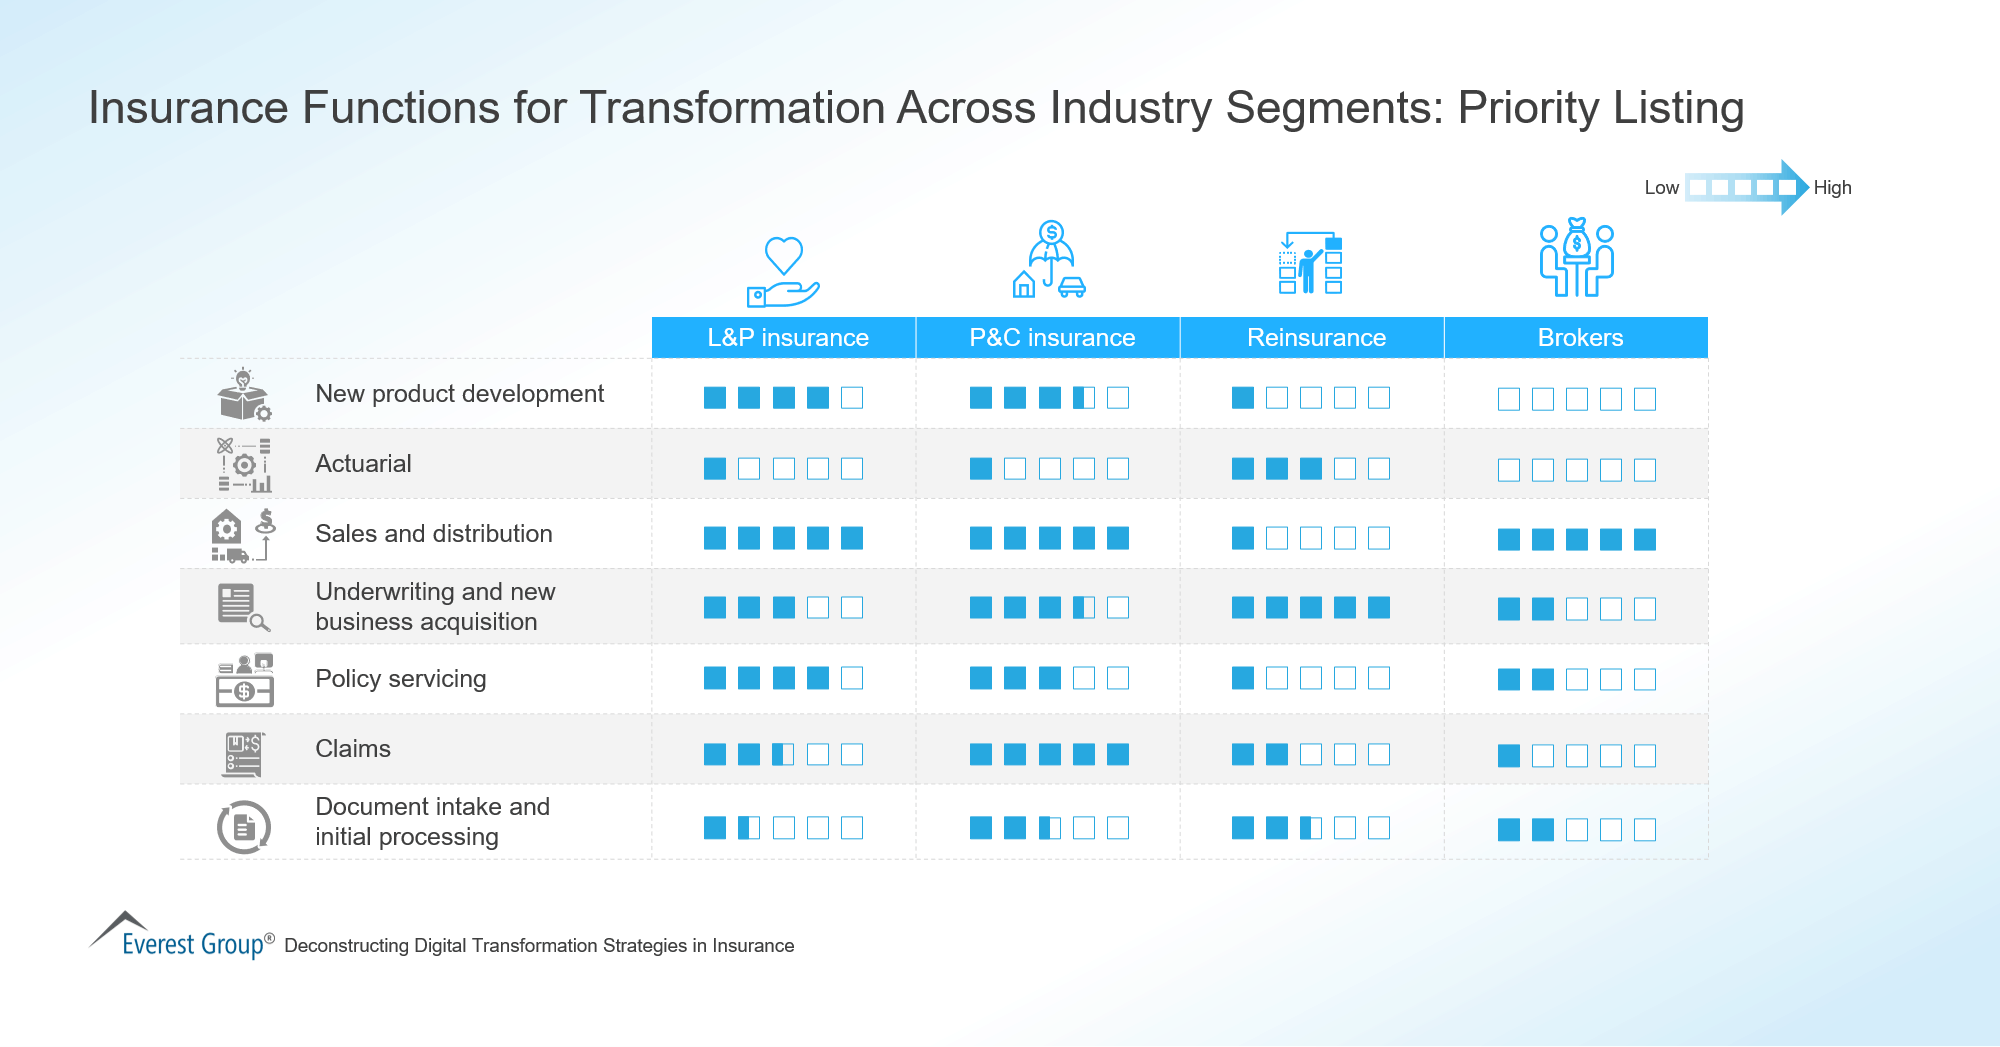 Insurance Functions for Transformation Across Industry Segments-Priority Listing